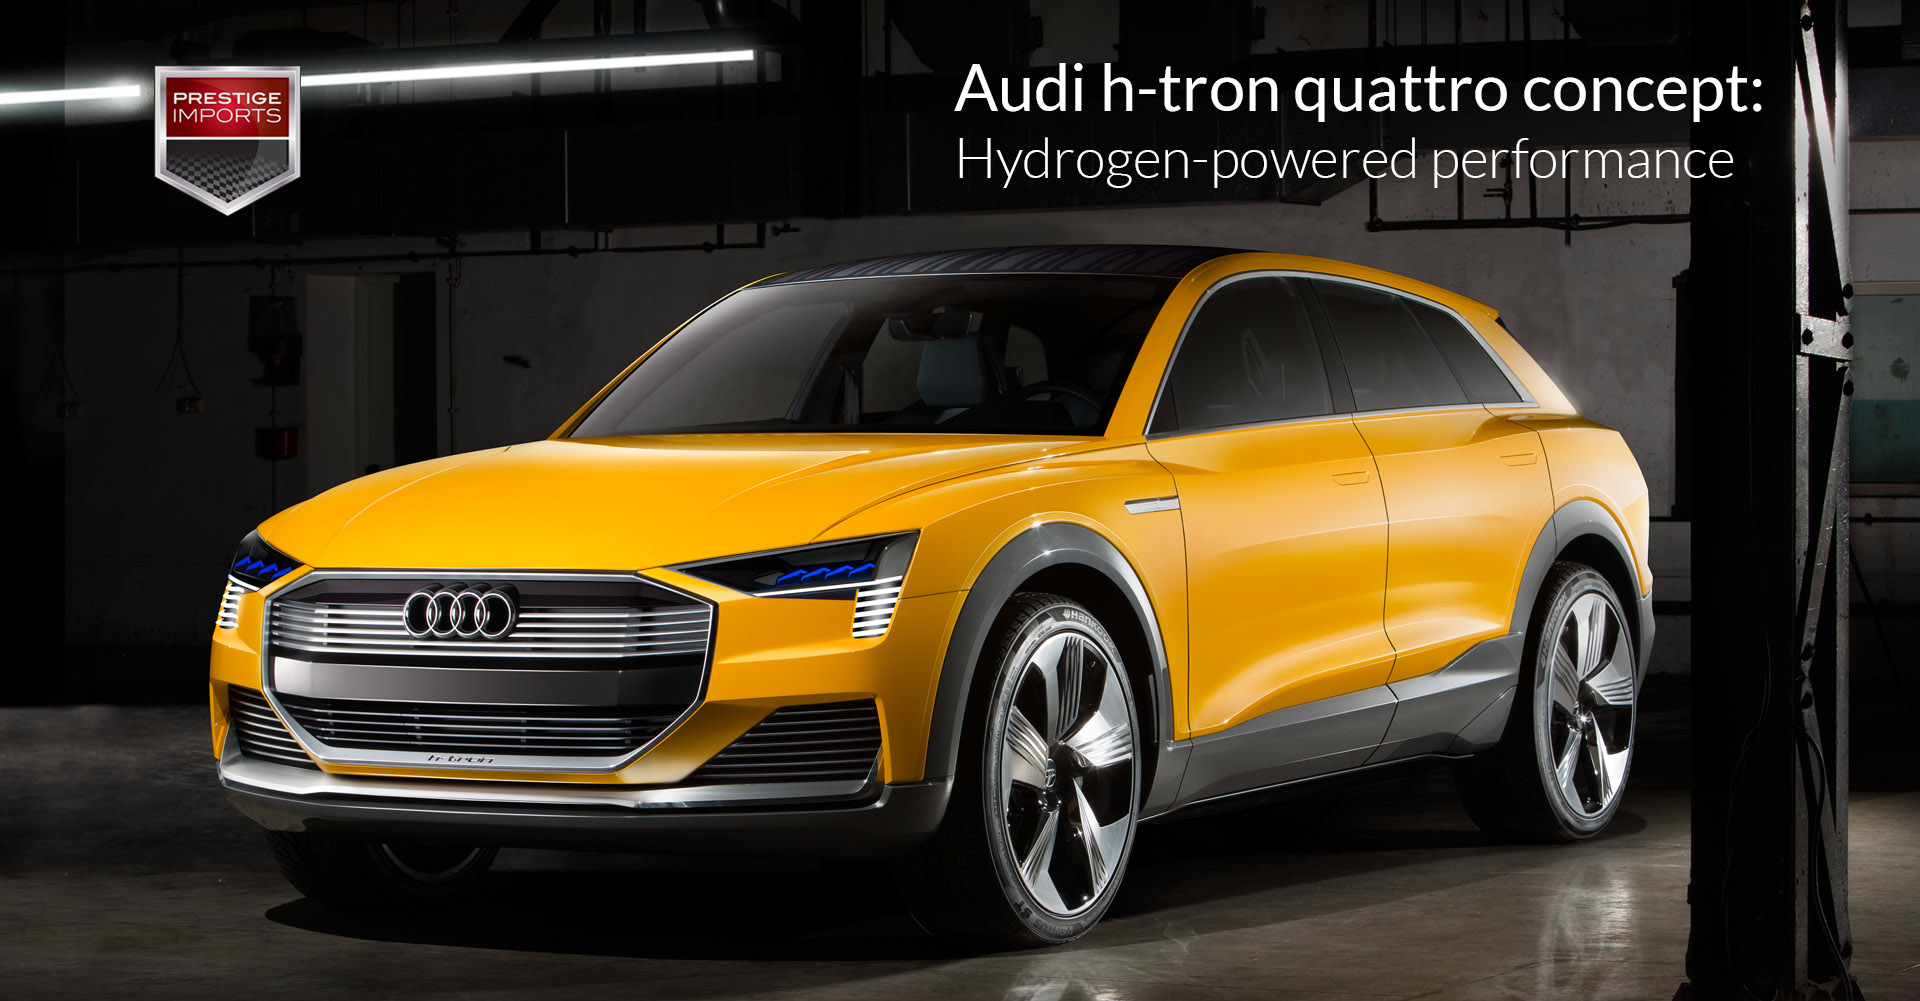 Audi h-tron quattro concept - Hydrogen-powered performance